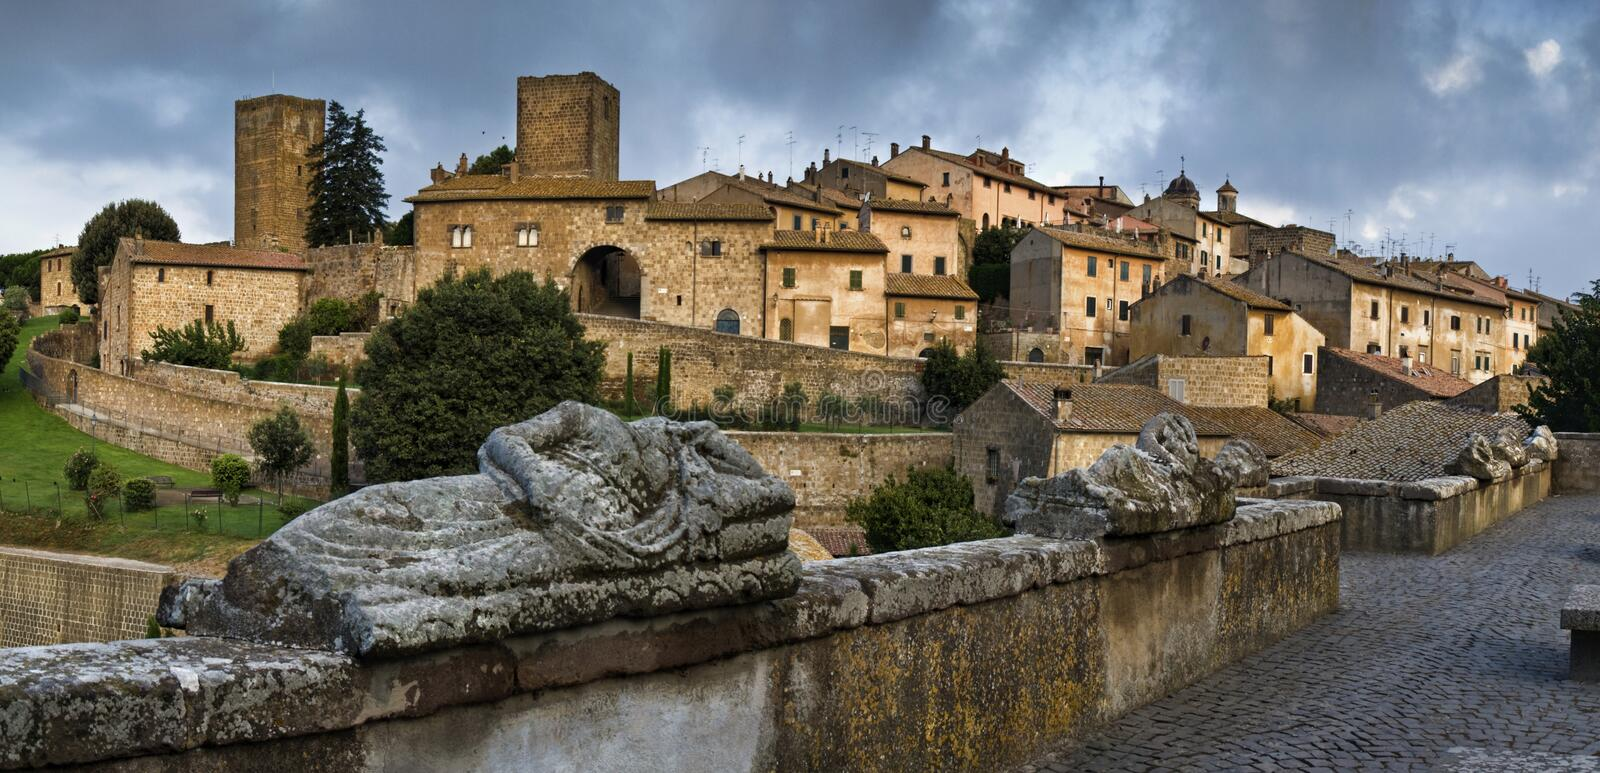 Tuscania, Lazio, Italy. Tuscania, one of the most beautiful town of northern Lazio, Italy stock photography